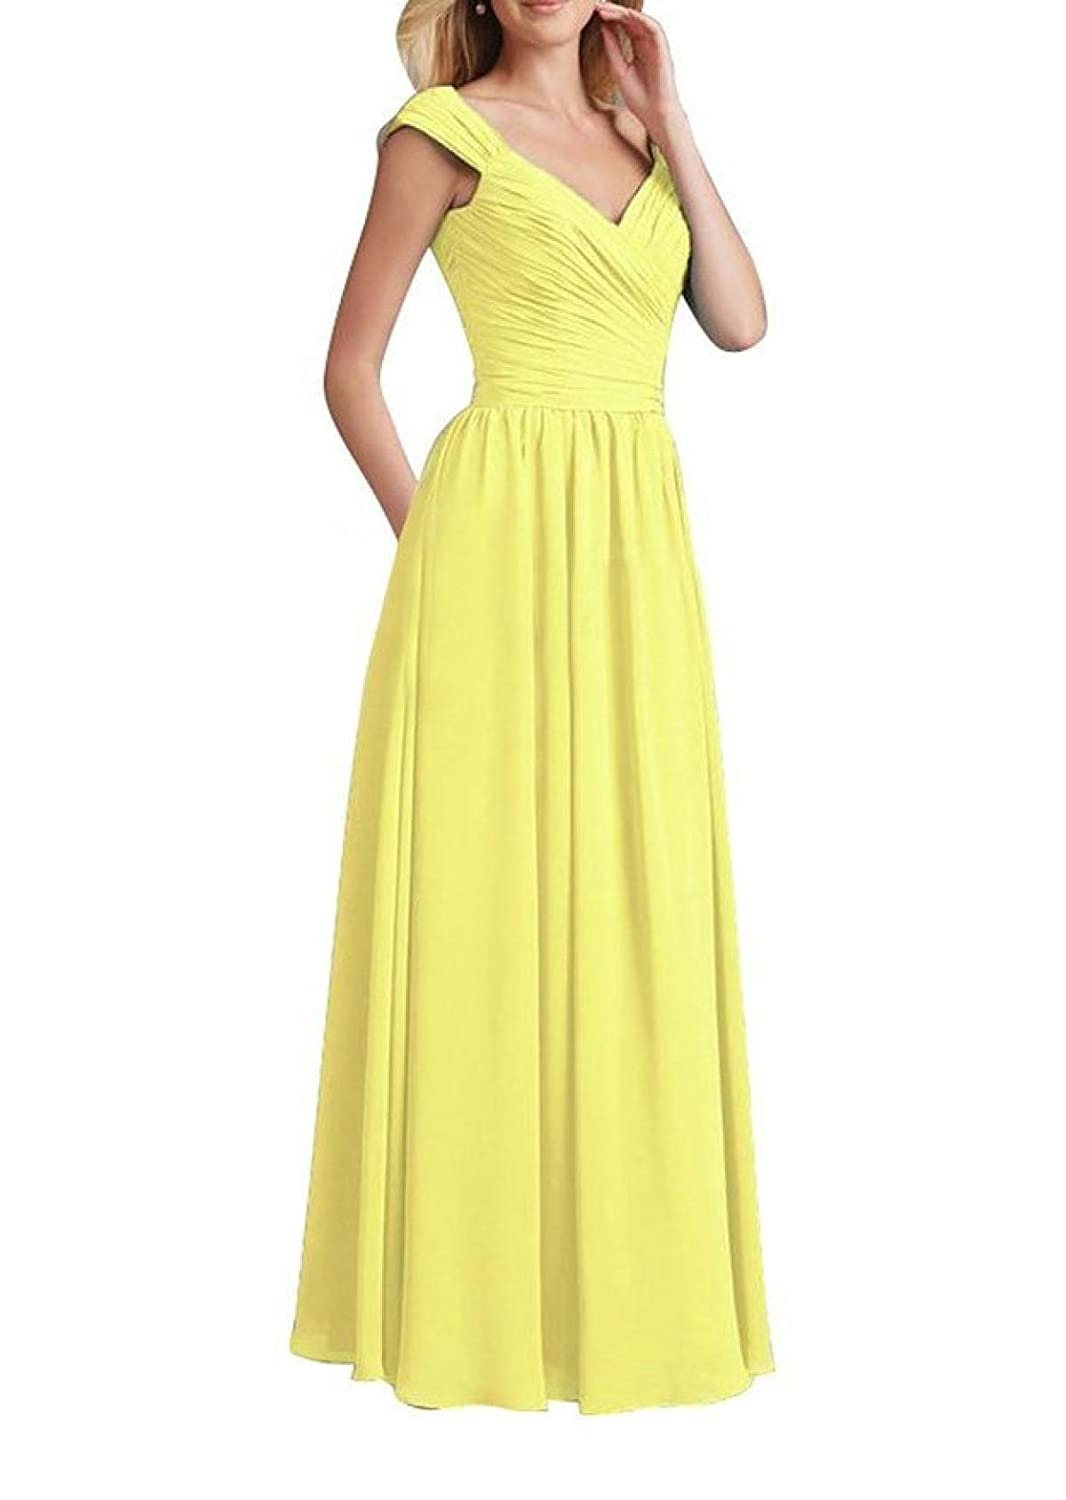 MeiZiWang Sommer Brautkleid Partykleid,Yellow-S